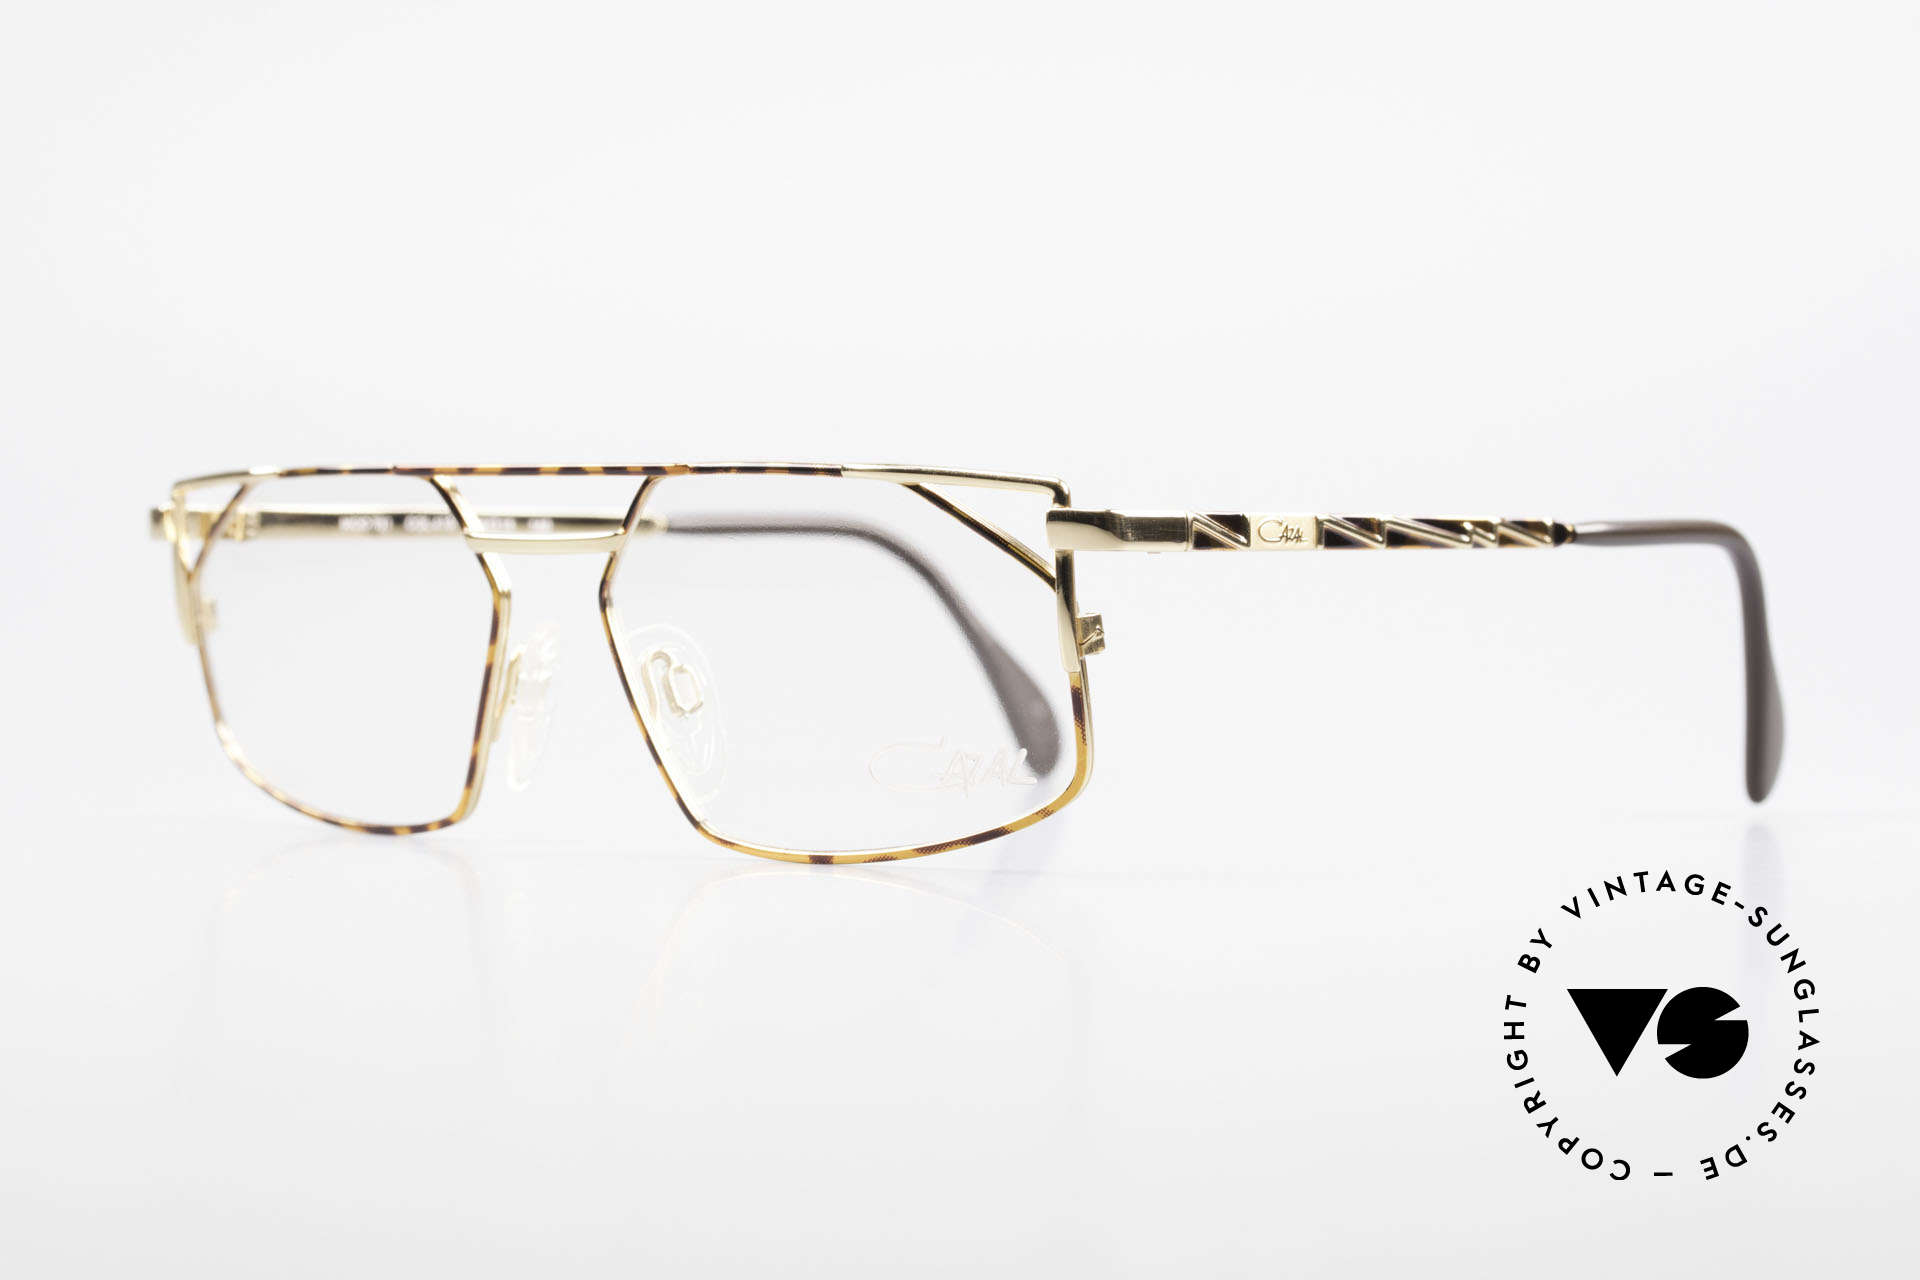 Cazal 751 90's Designer Eyeglasses, tangible premium craftsmanship; made in Germany, Made for Men